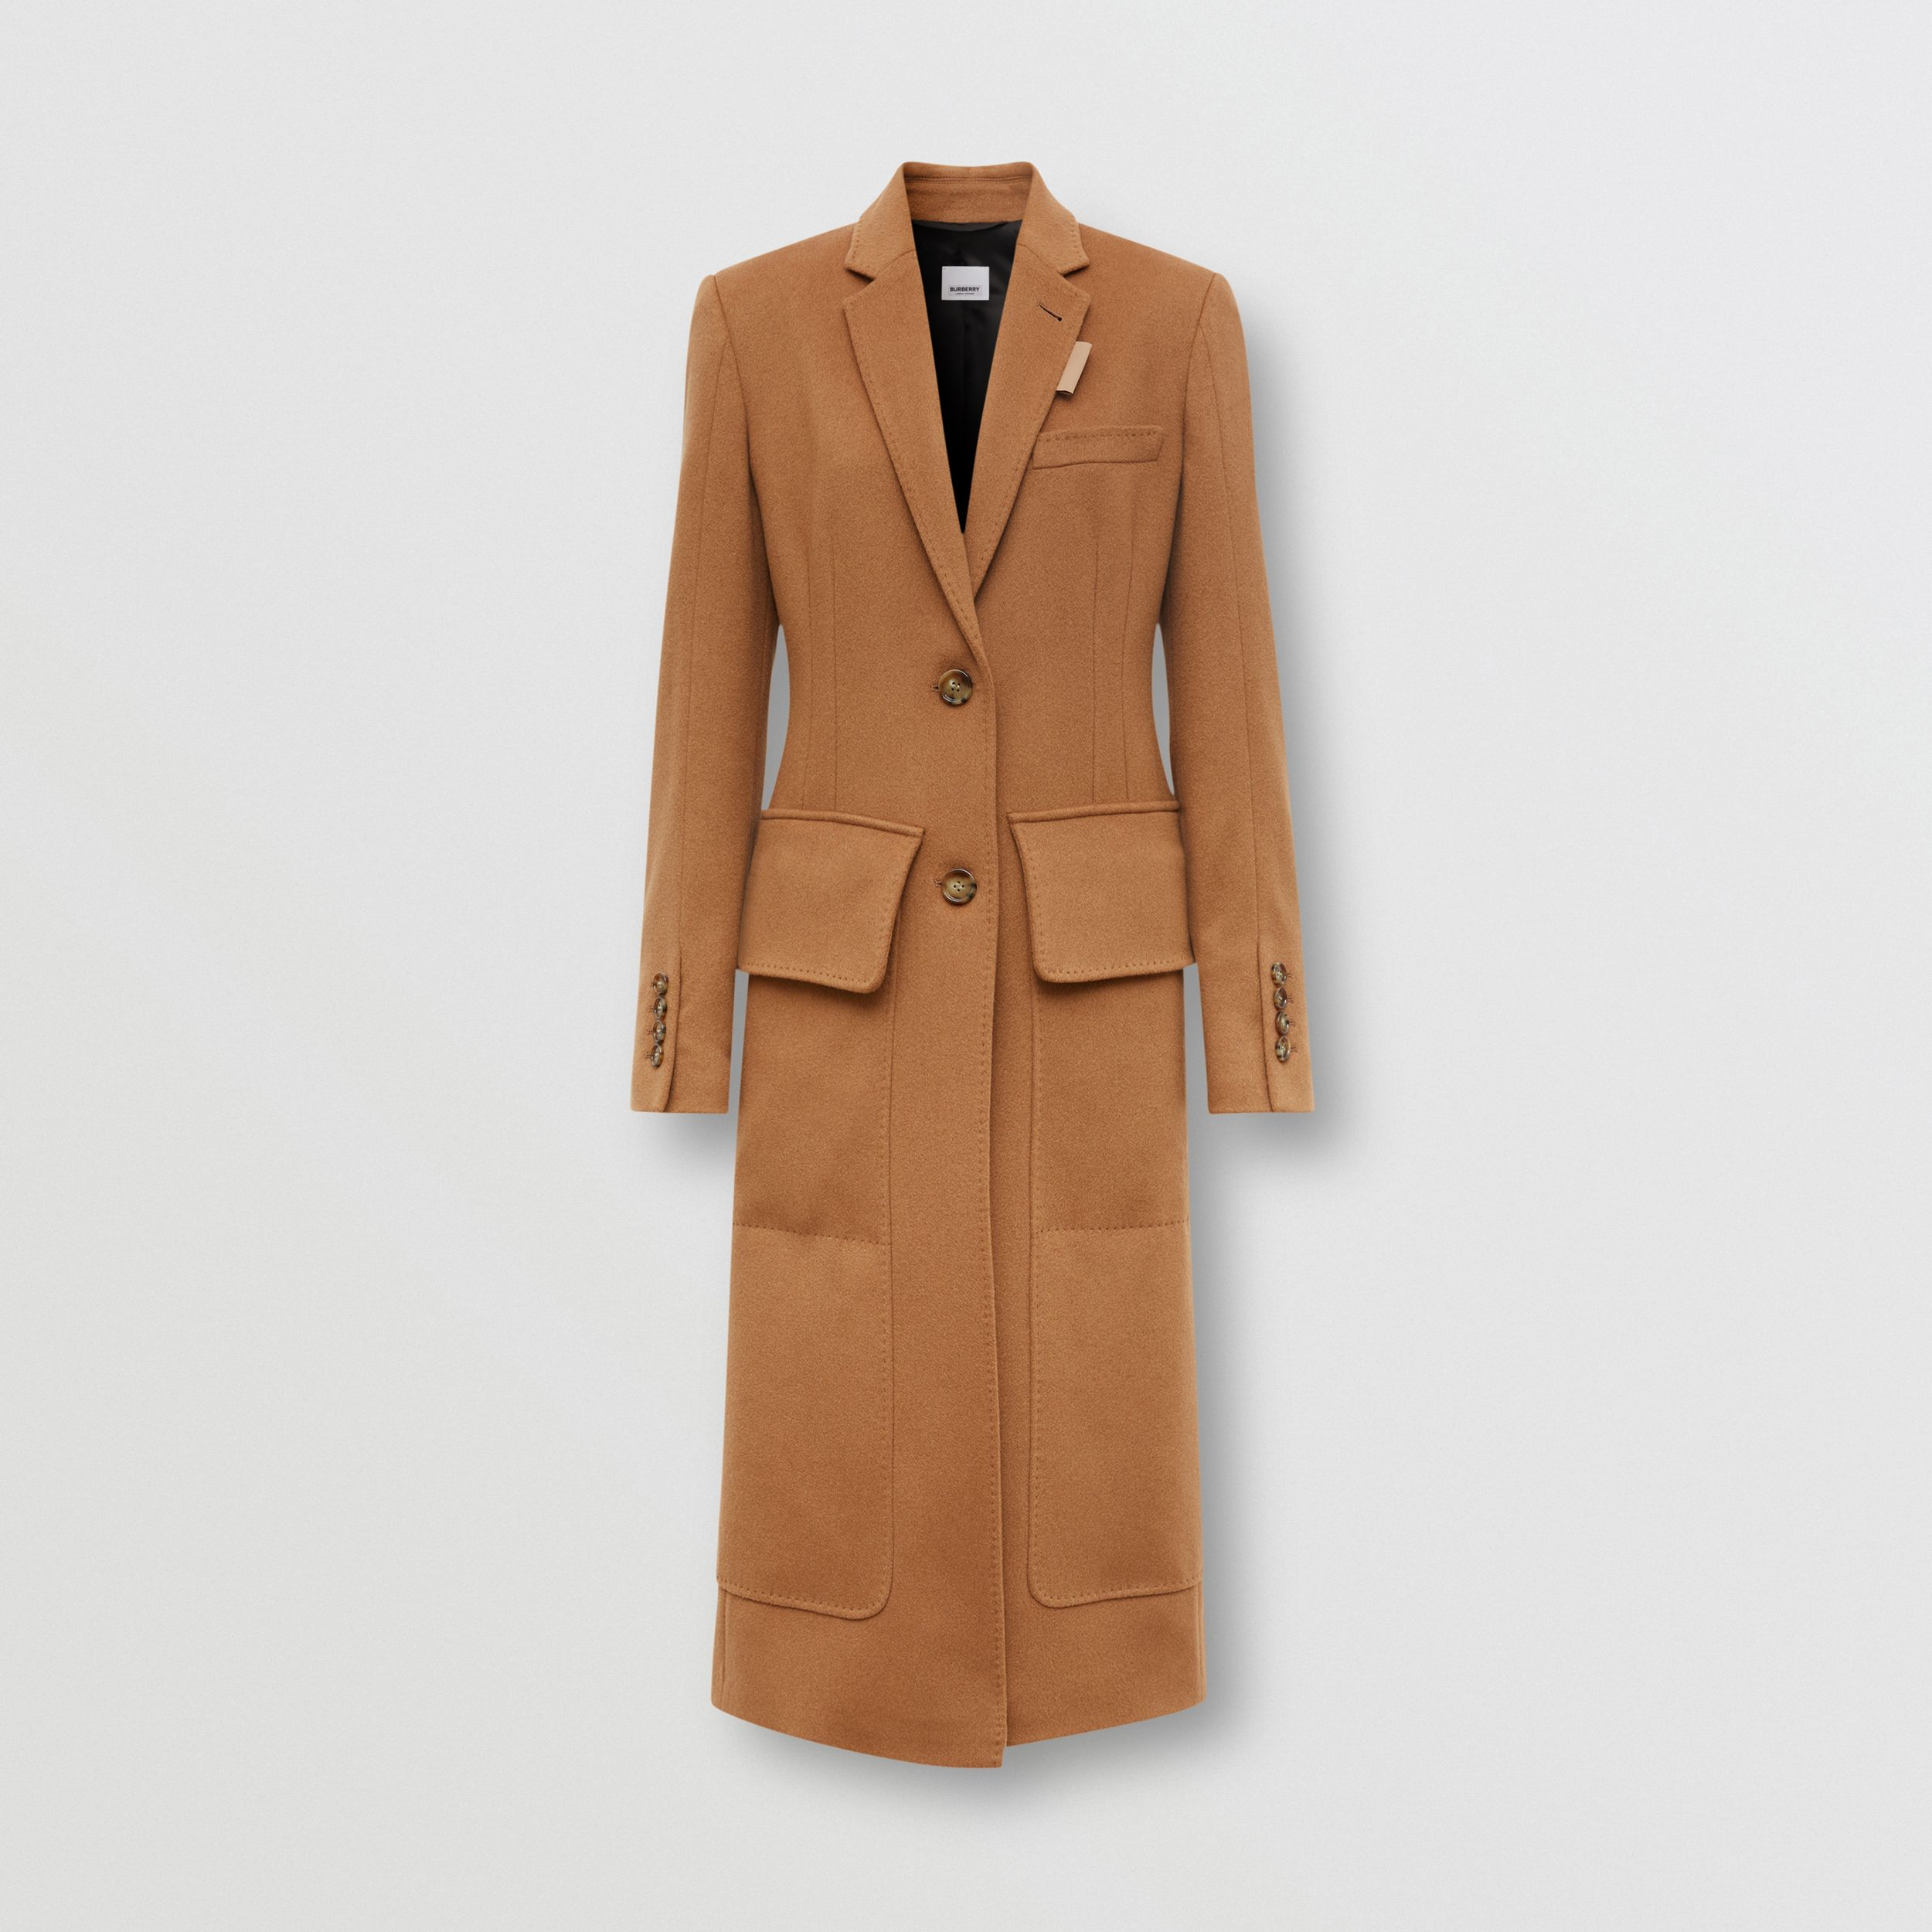 Cashmere Tailored Coat in Bronze - Women | Burberry Australia - 4